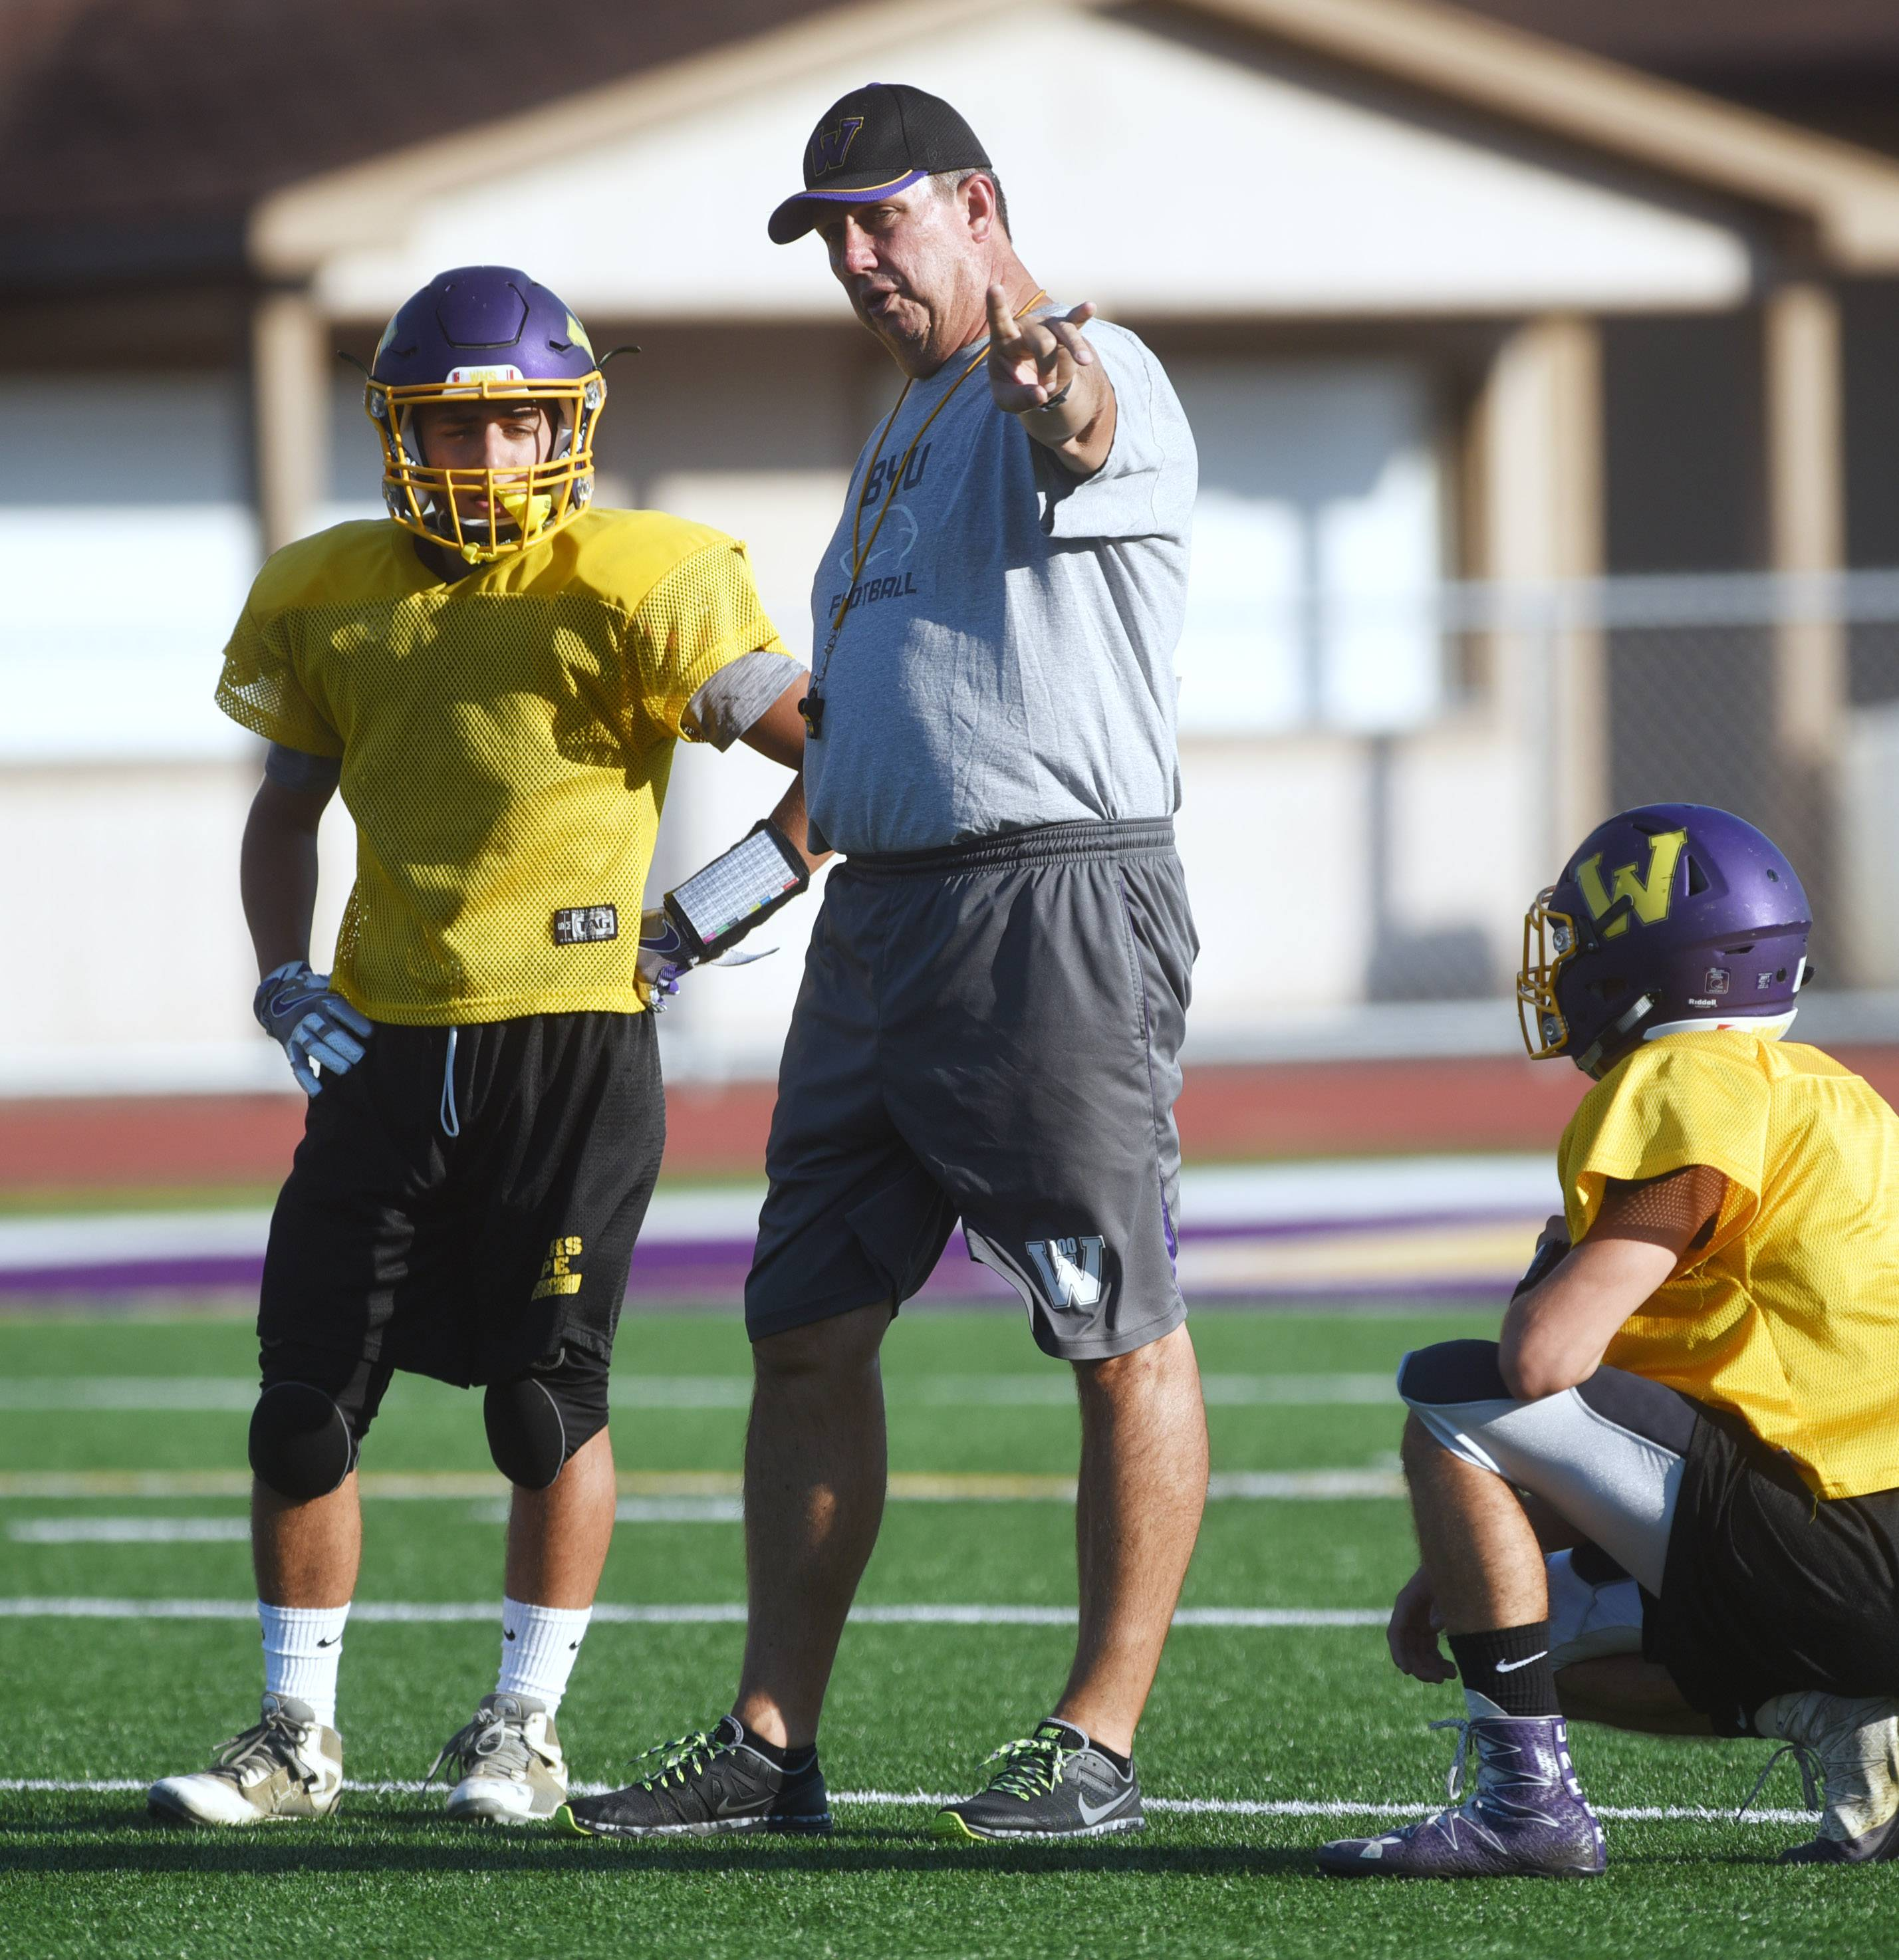 Coach Dave Mills, center, works with his players during Wednesday's practice as Wauconda's football family sticks together through trying times.